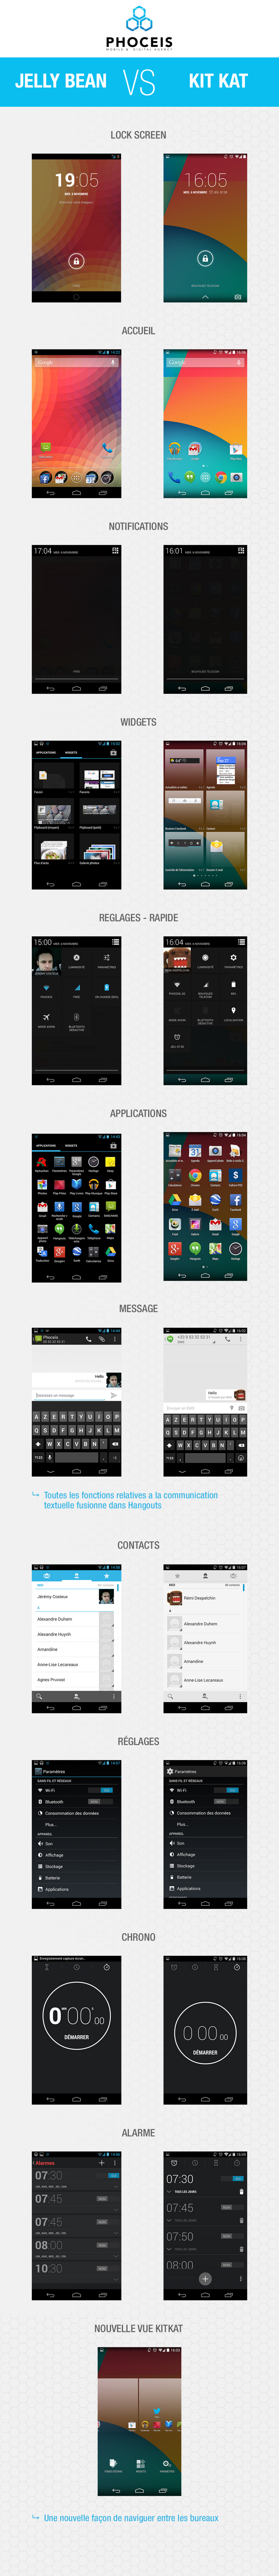 Android JellyBean VS KitKat Infographic